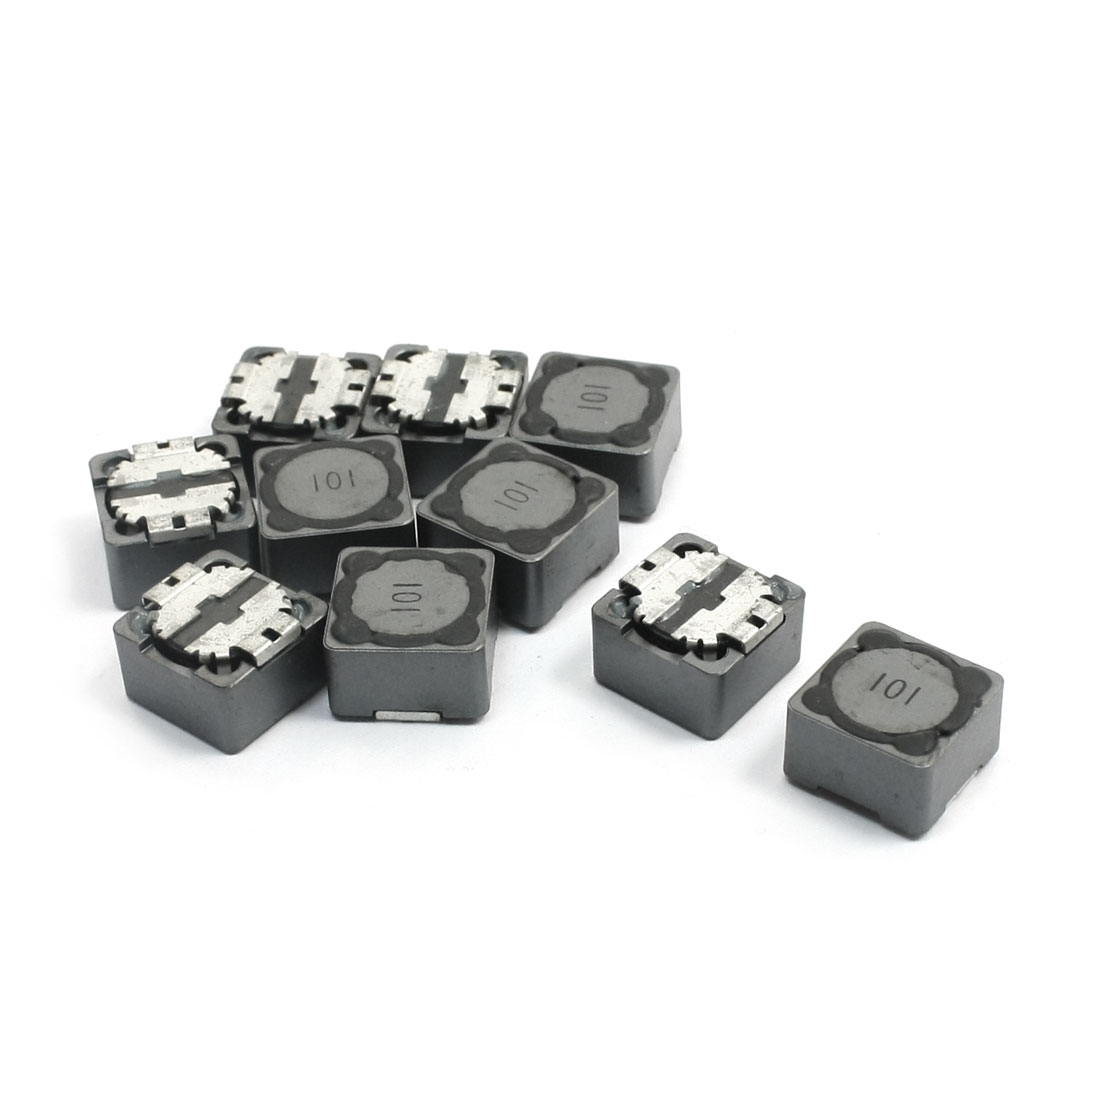 100uH 1.7A Gray Square Surface Mounting SMT SMD Power Inductor 12mm x 12mm x 7mm 10Pcs